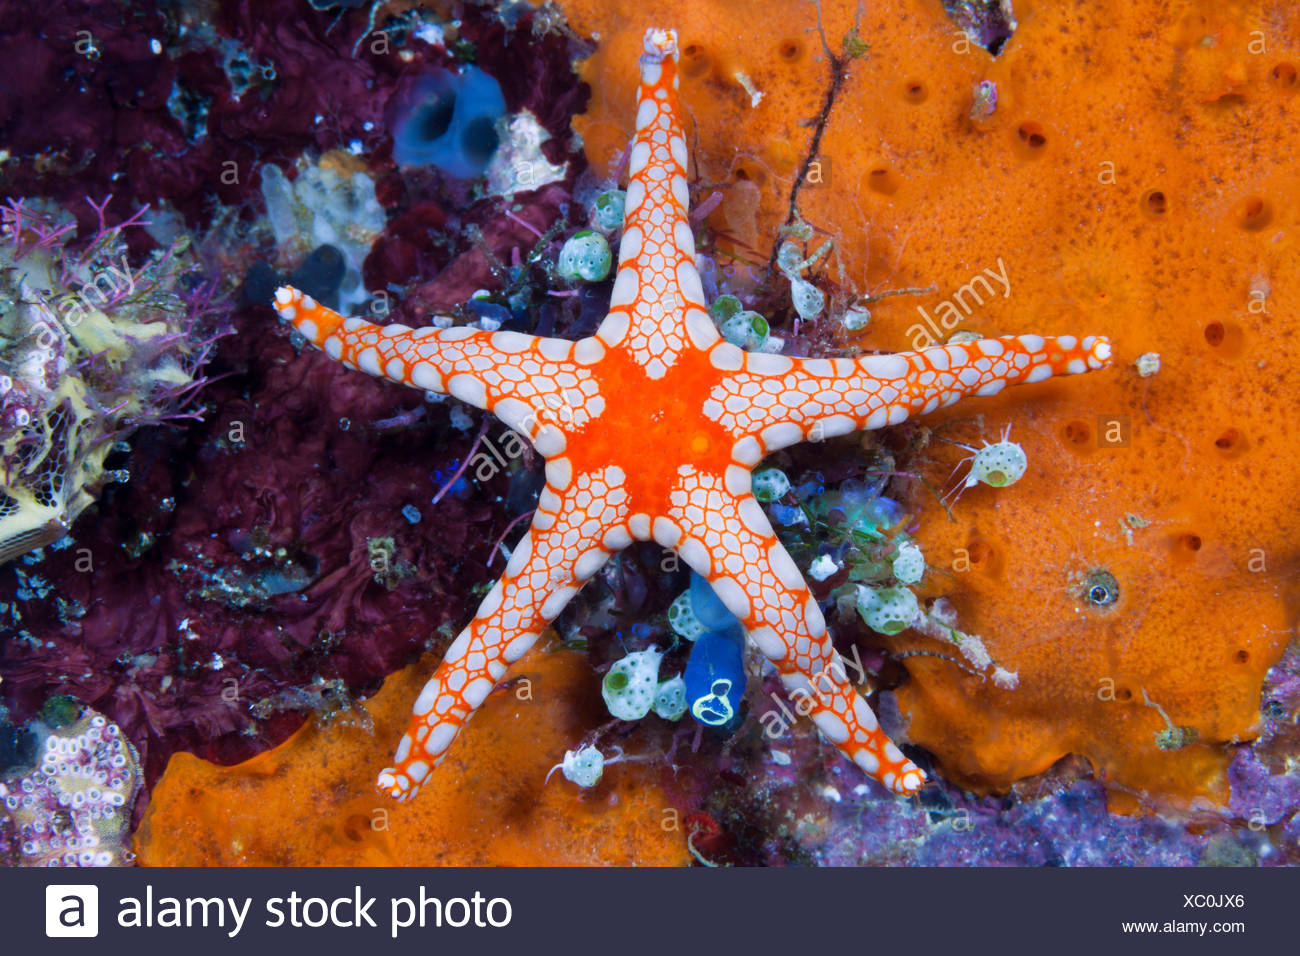 Red mesh starfish, Fromia monilis, ambon, the Moluccas, Indonesia Stock Photo